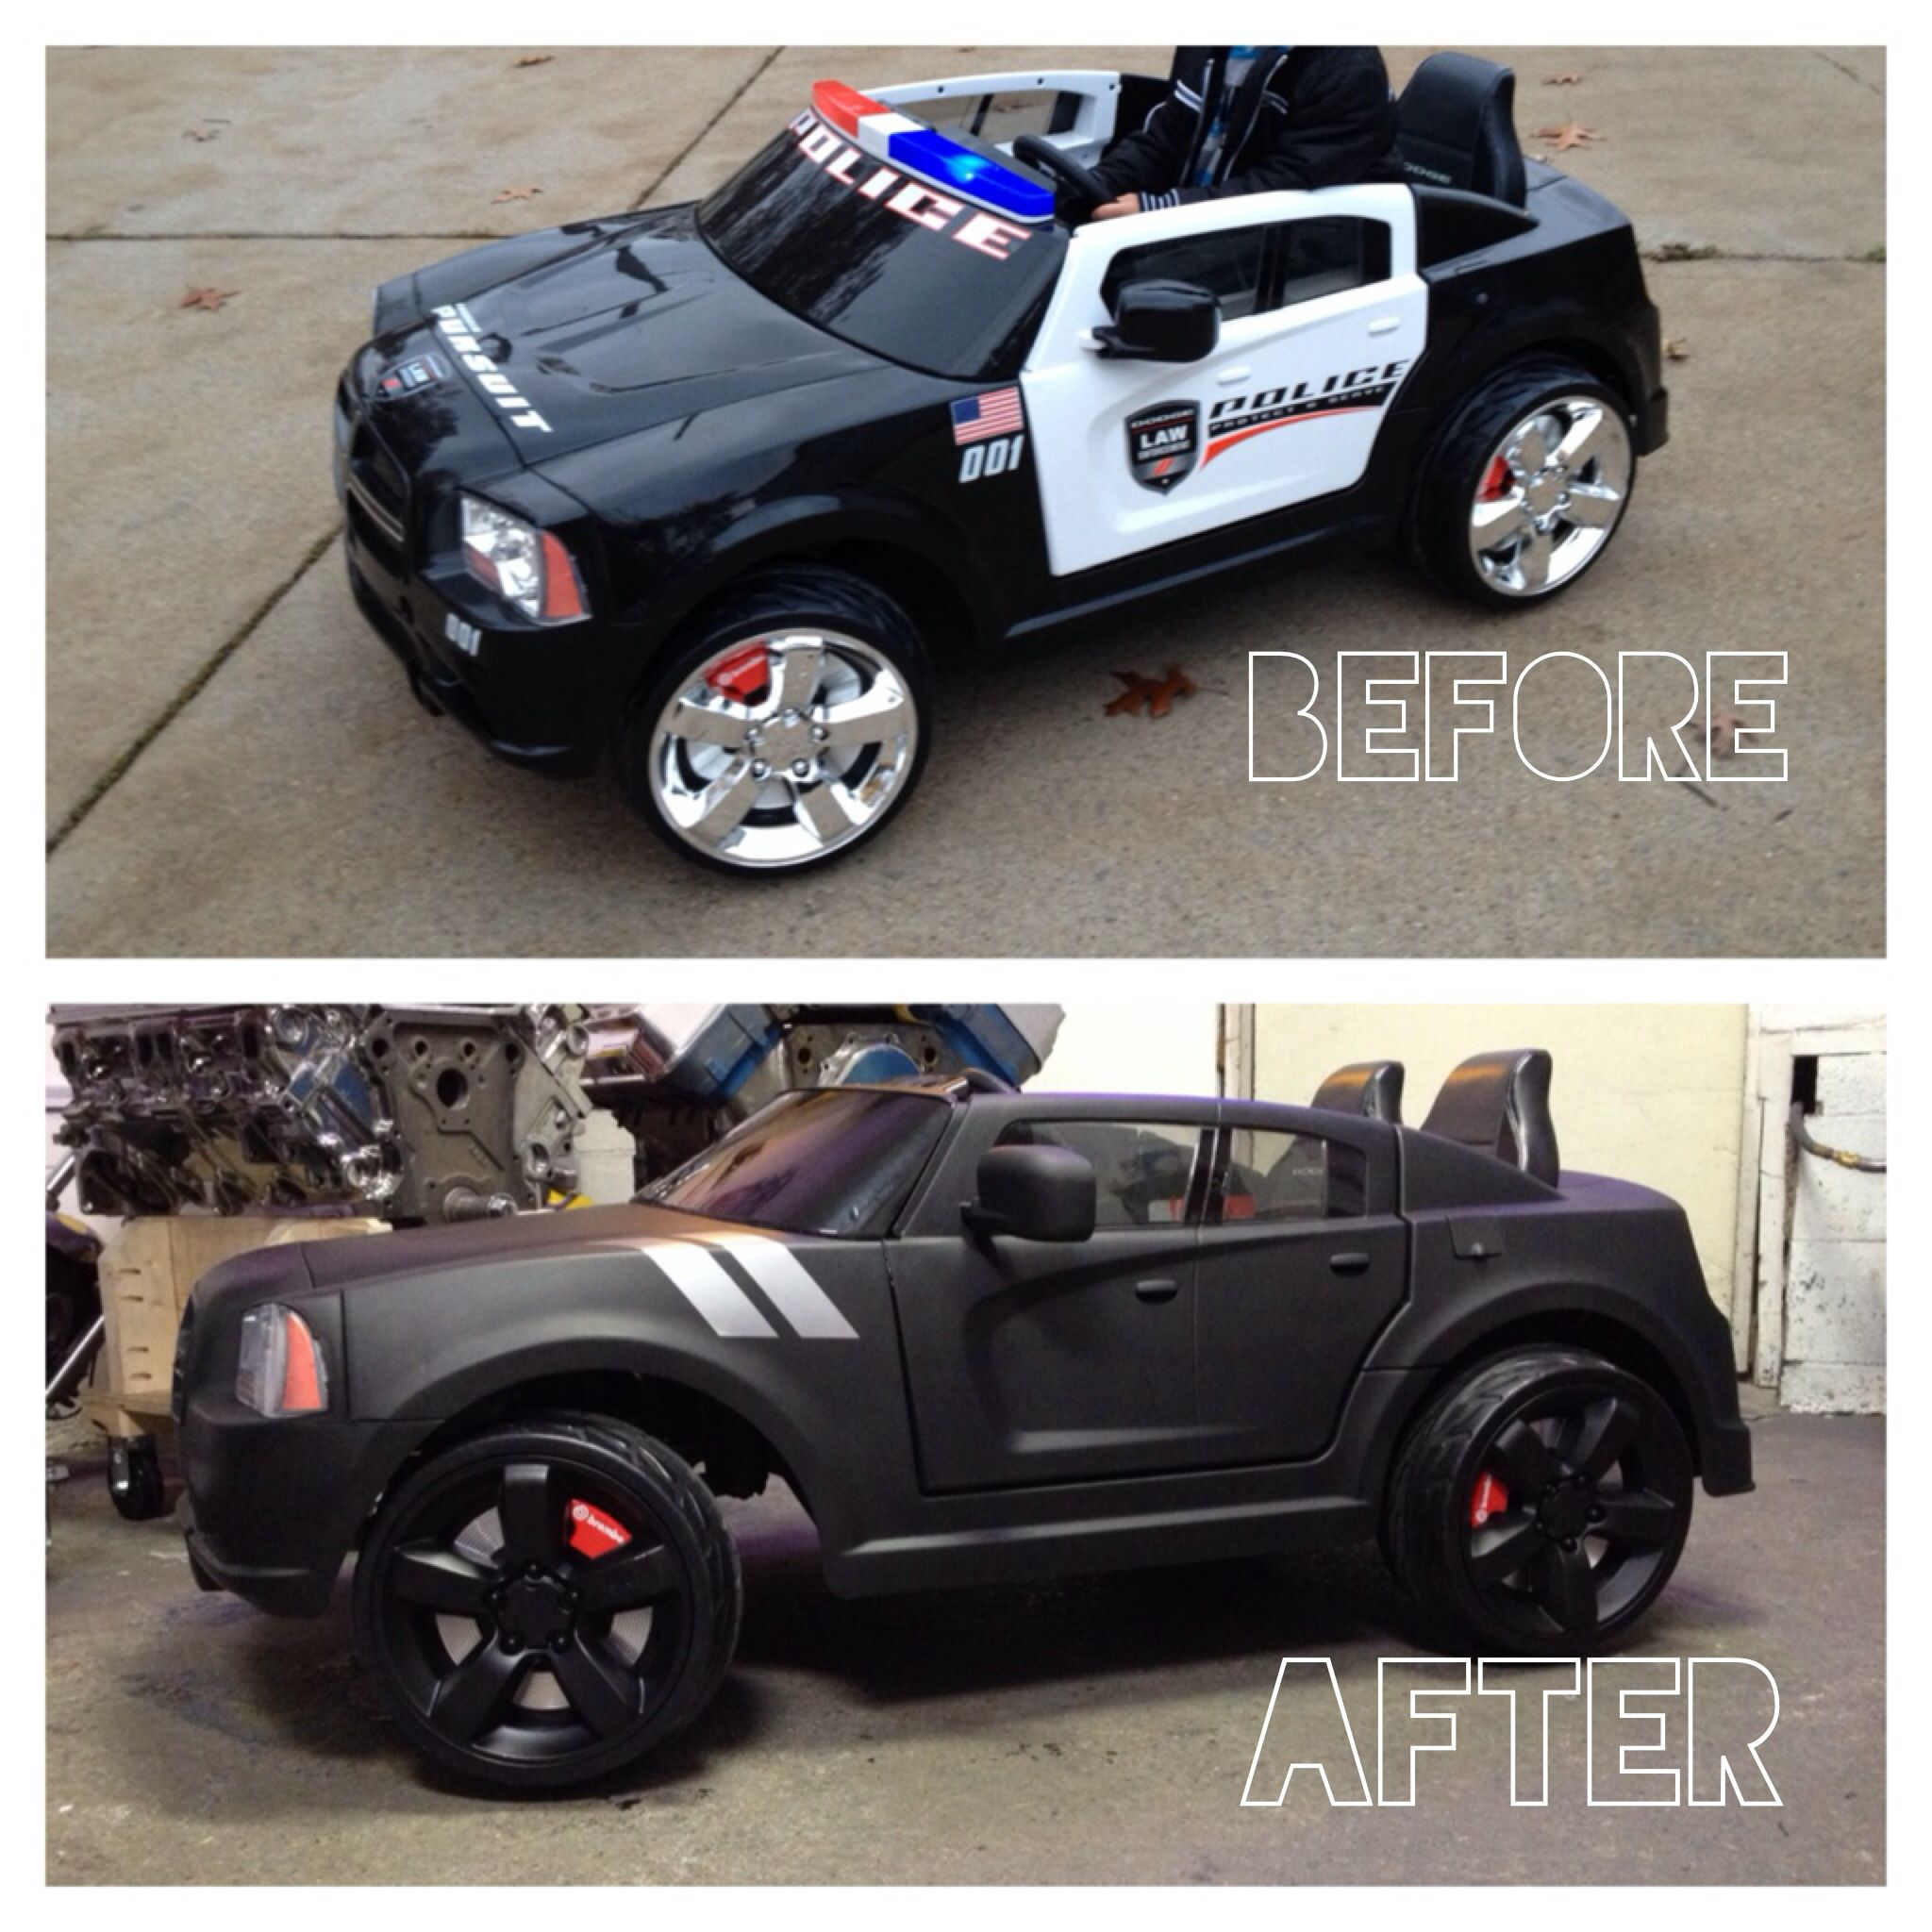 Overhauled My Sons Powerwheels Dodge Charger Police Car